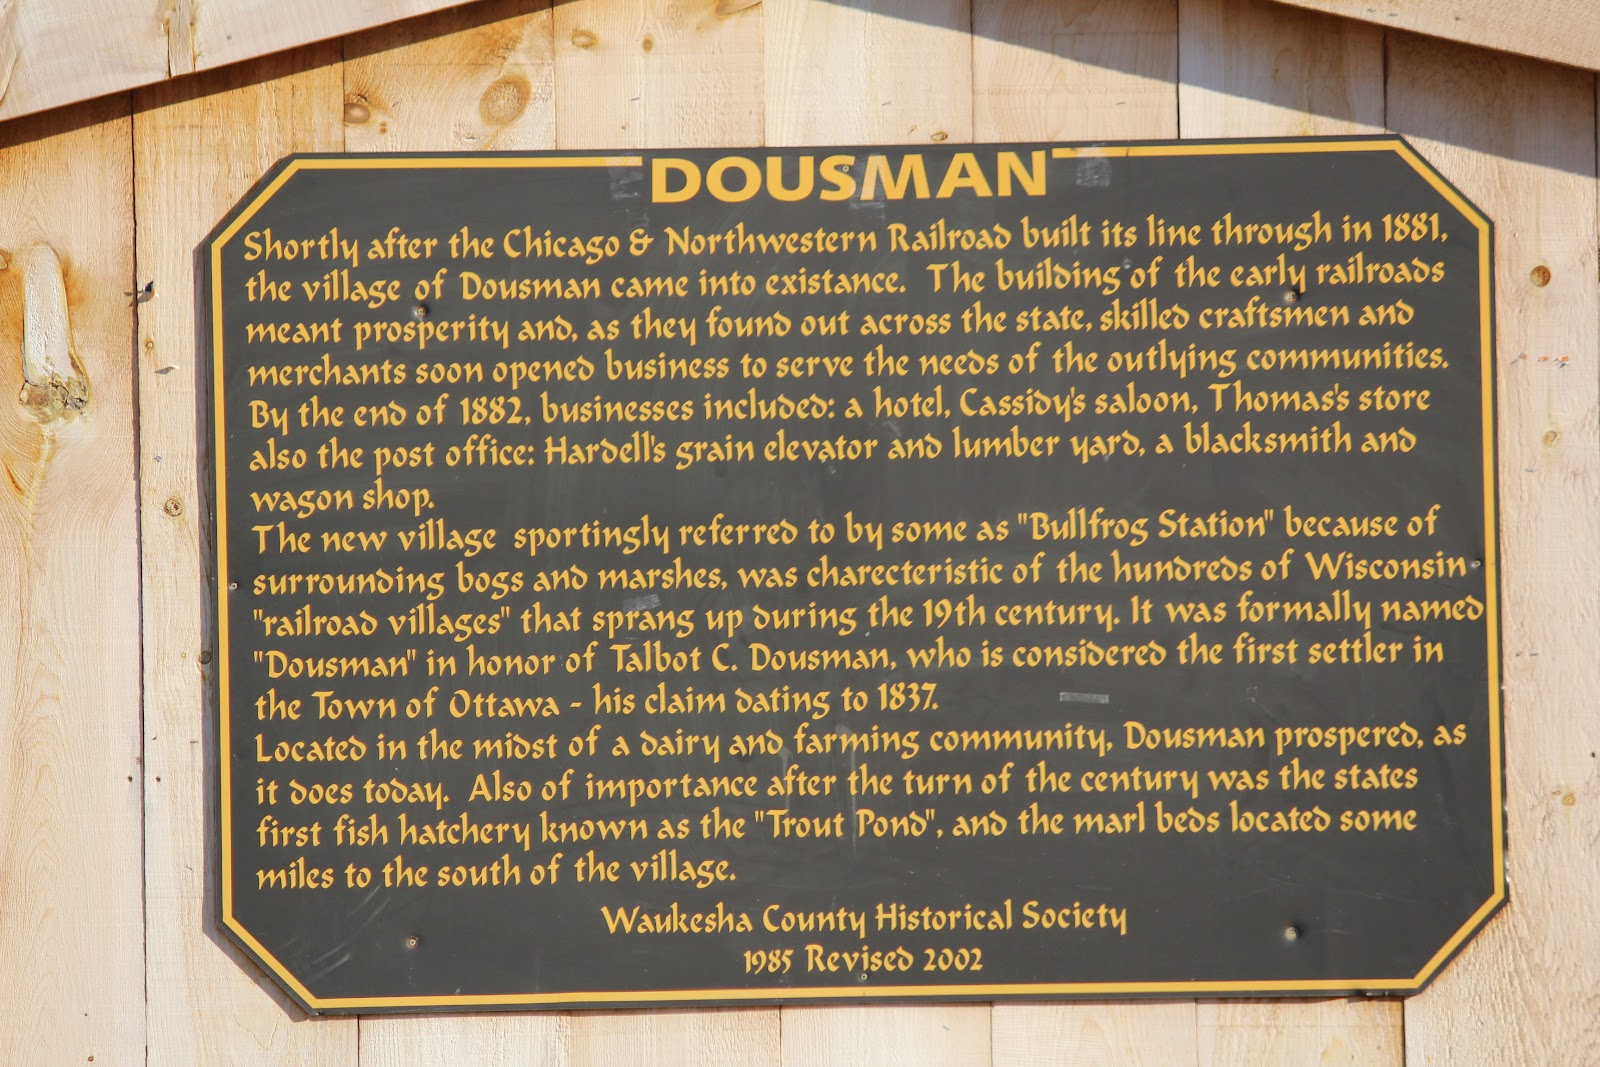 dousman personals Find personals listings in whitewater, wi on oodle classifieds join millions of people using oodle to find great personal ads don't miss what's happening in your neighborhood.